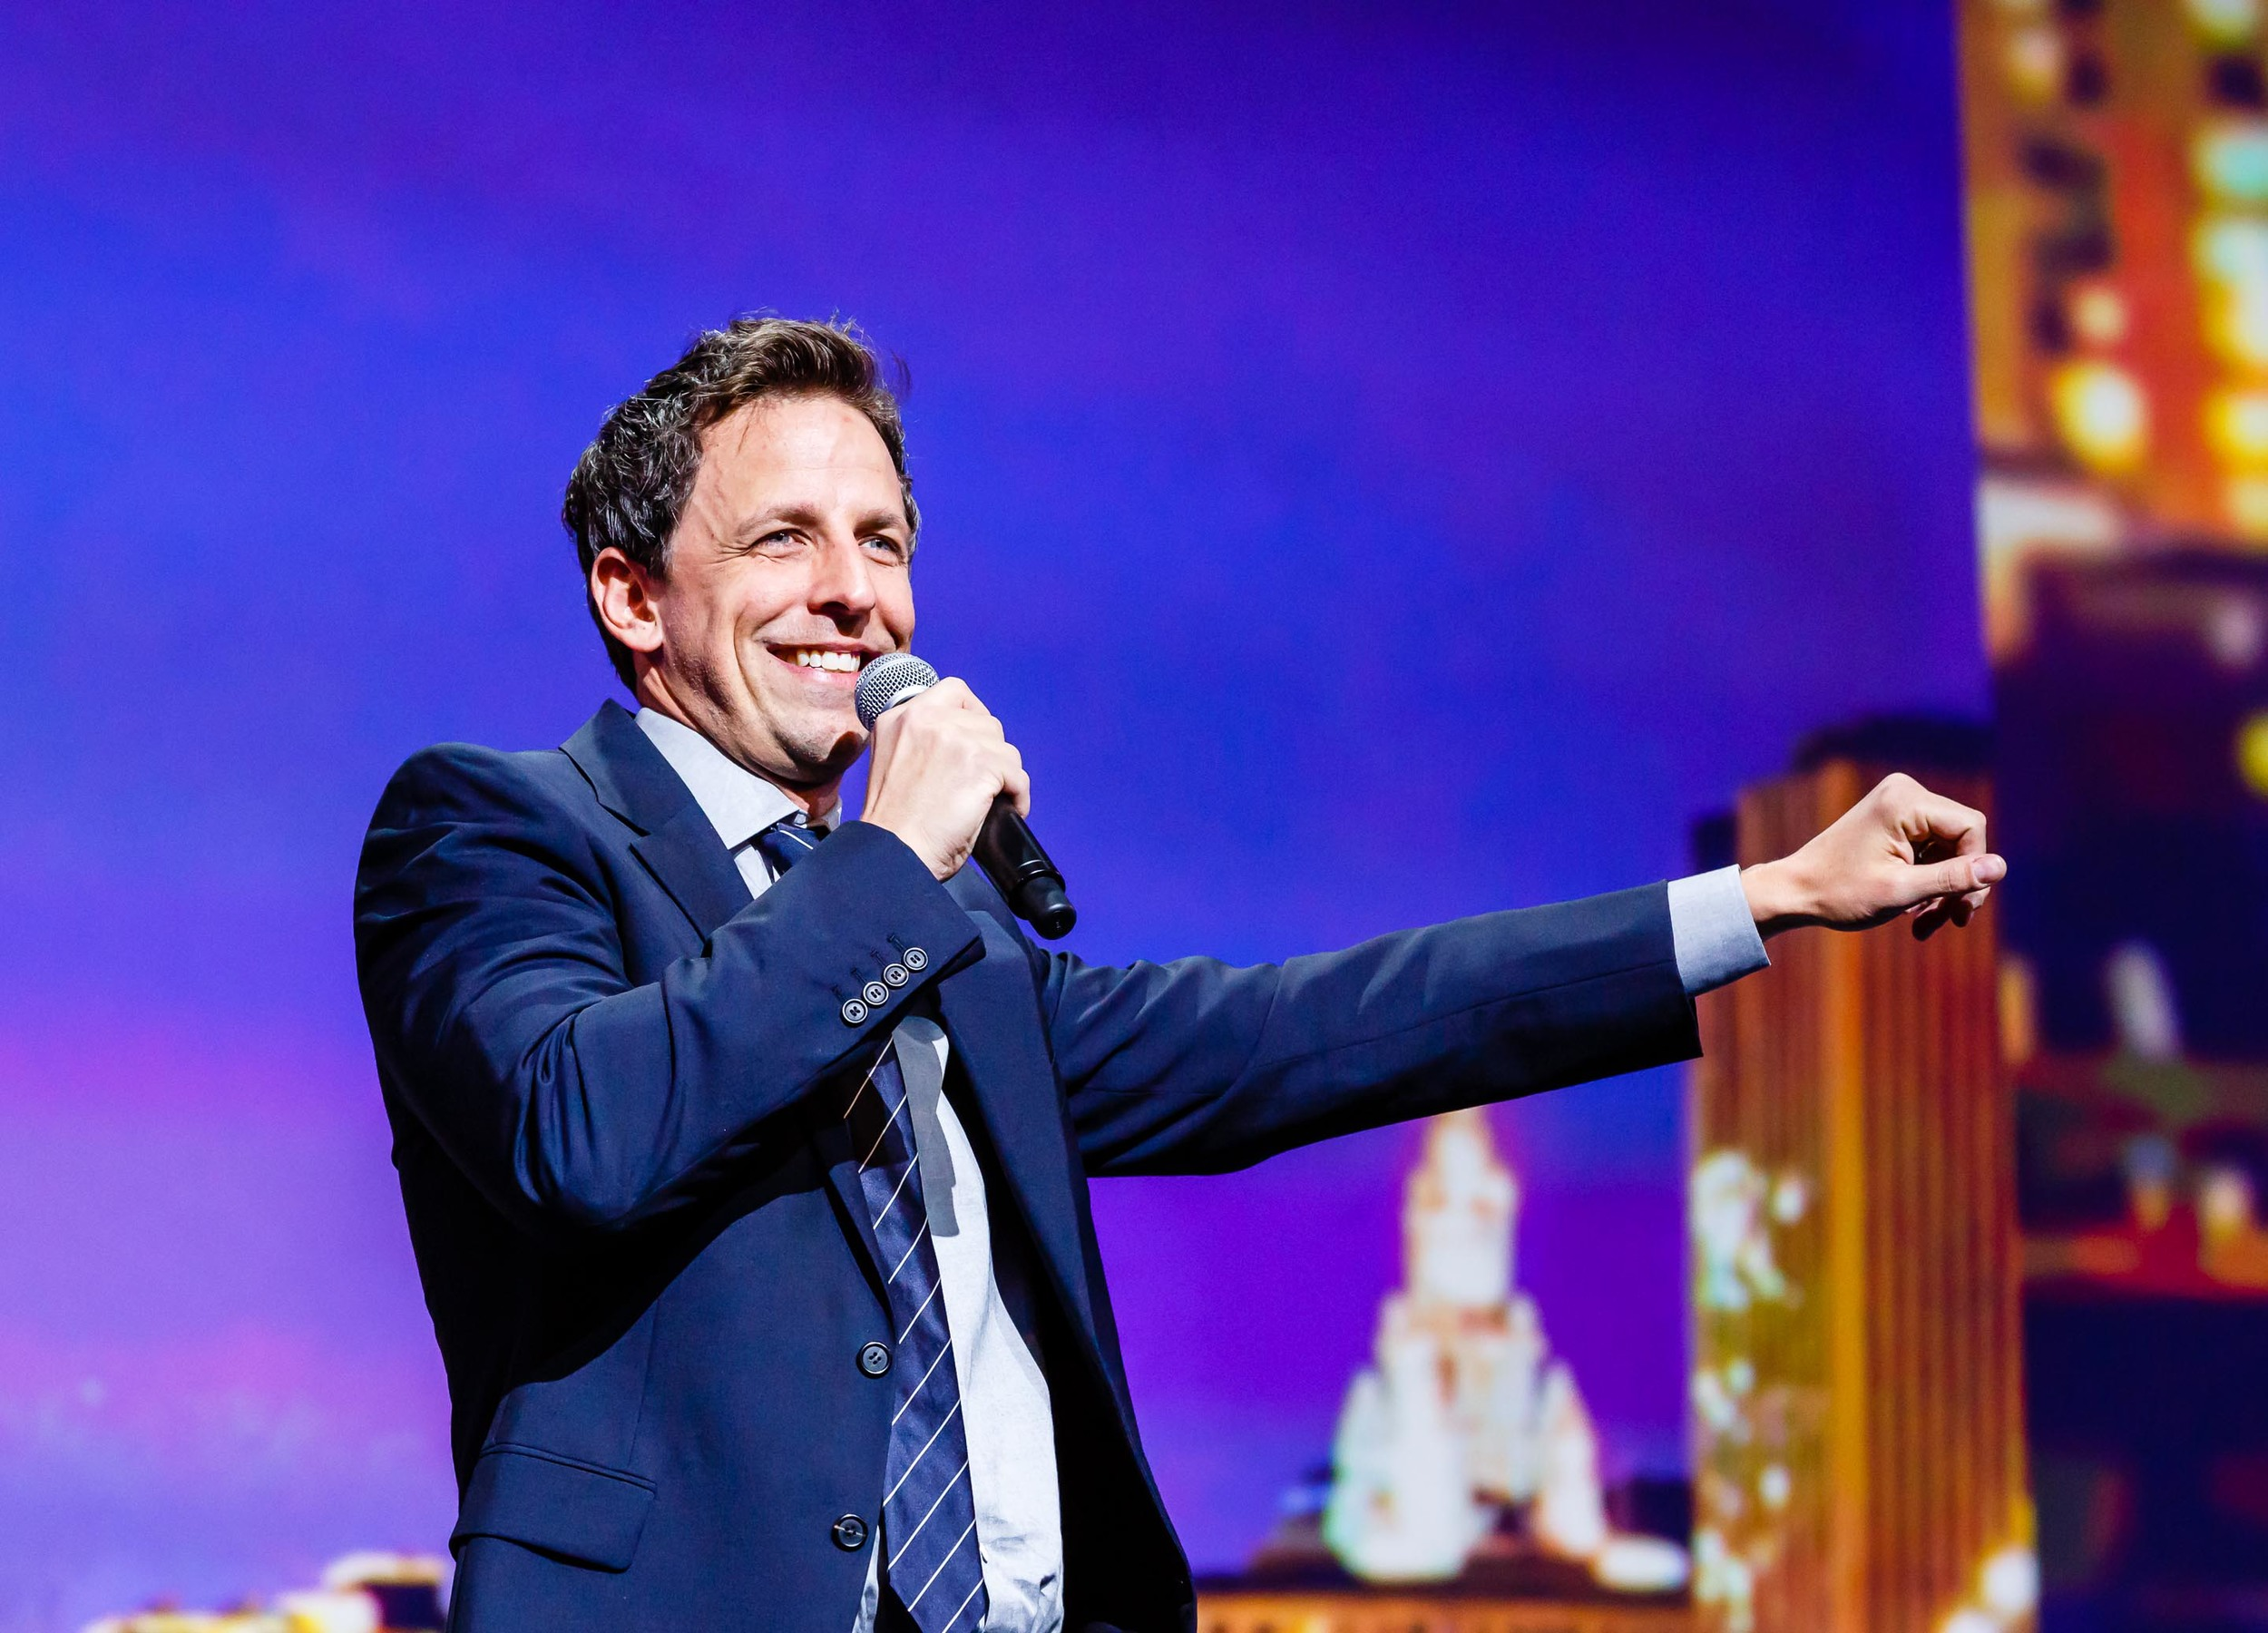 20140127082612 3244 MON IBM CONNECT 2014 LOW_RES SETH MEYERS.JPG